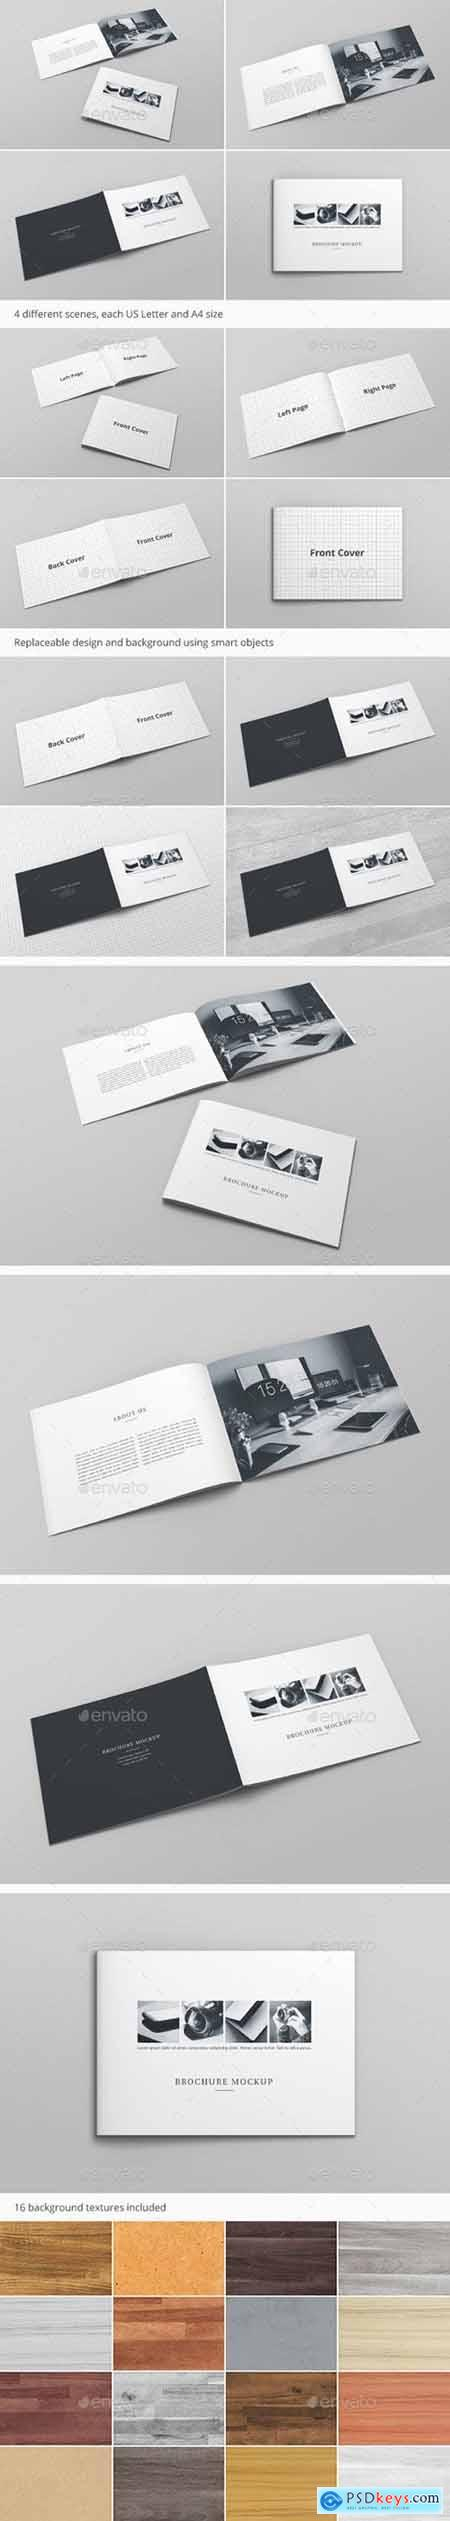 Brochure Catalog Mockup Vol. 2